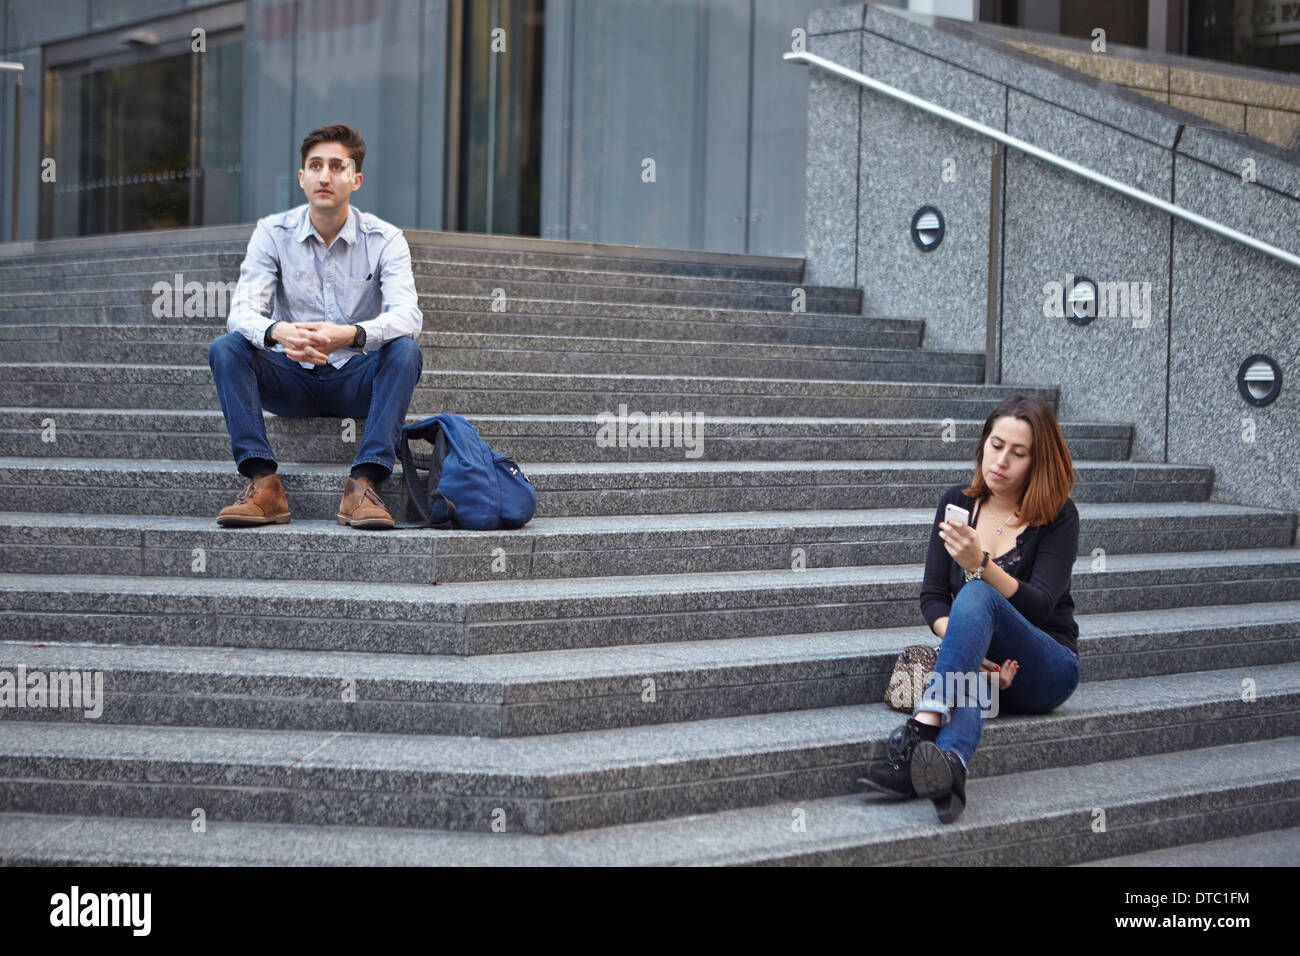 Unhappy couple sitting apart on steps - Stock Image